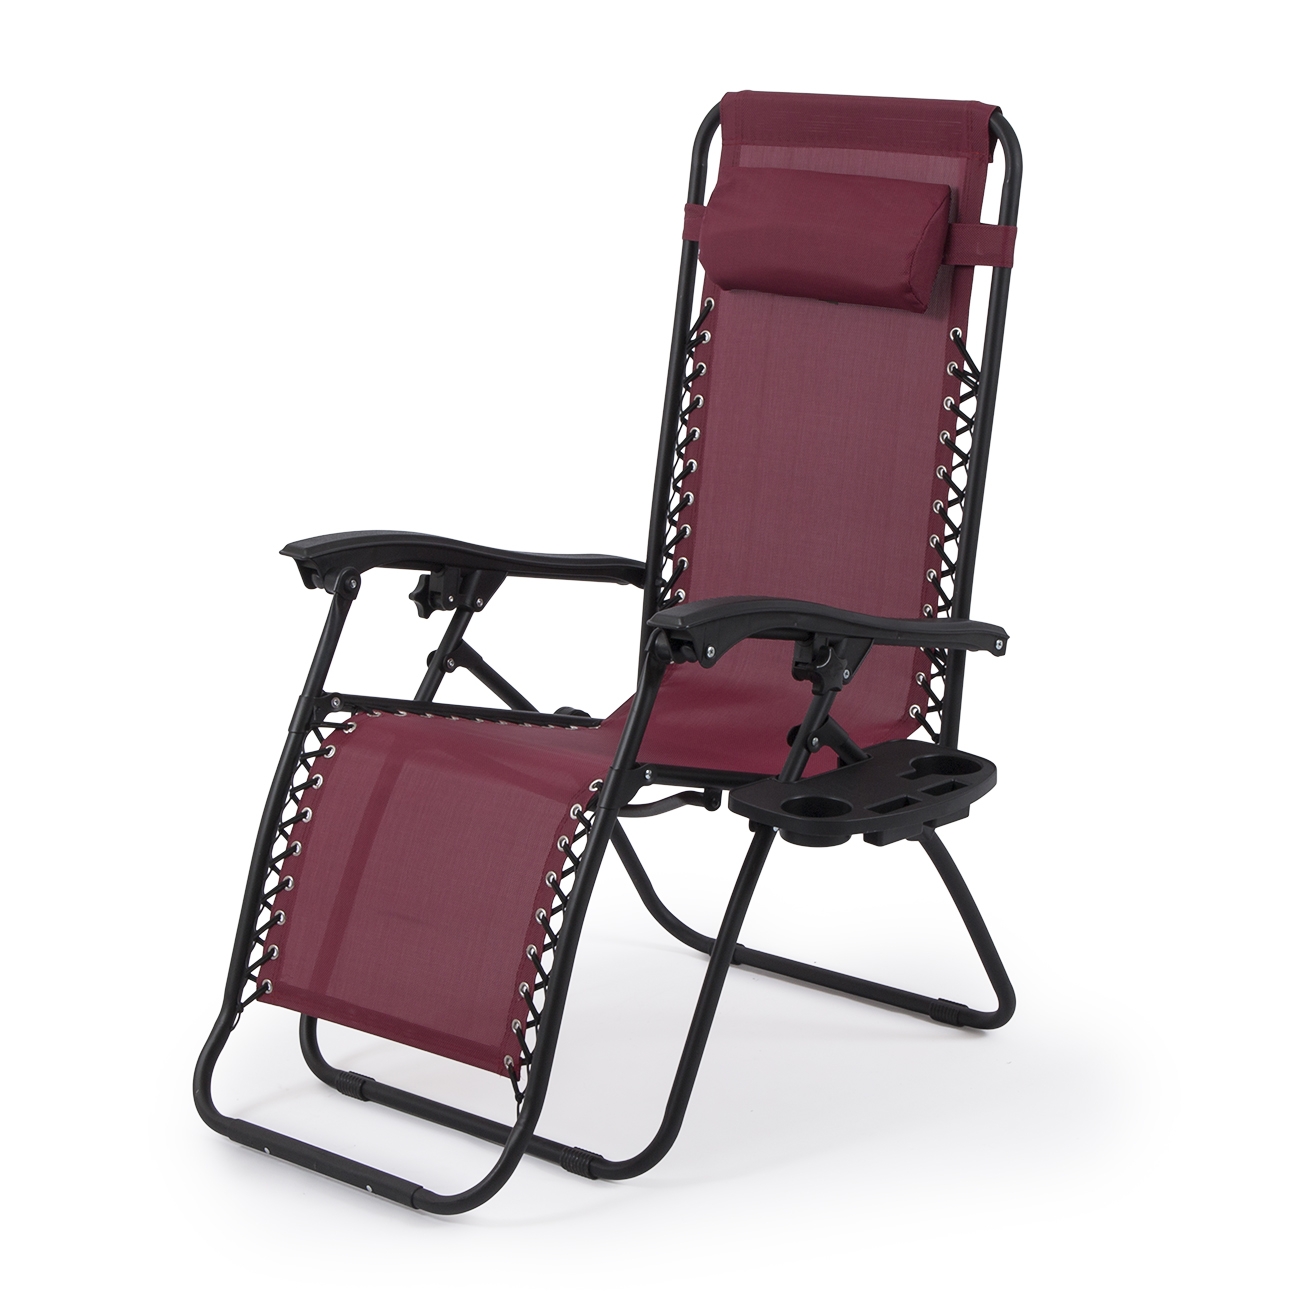 2 Set Burgundy Chair Zero Gravity Folding Lounge Recliner Patio Pool w Tray